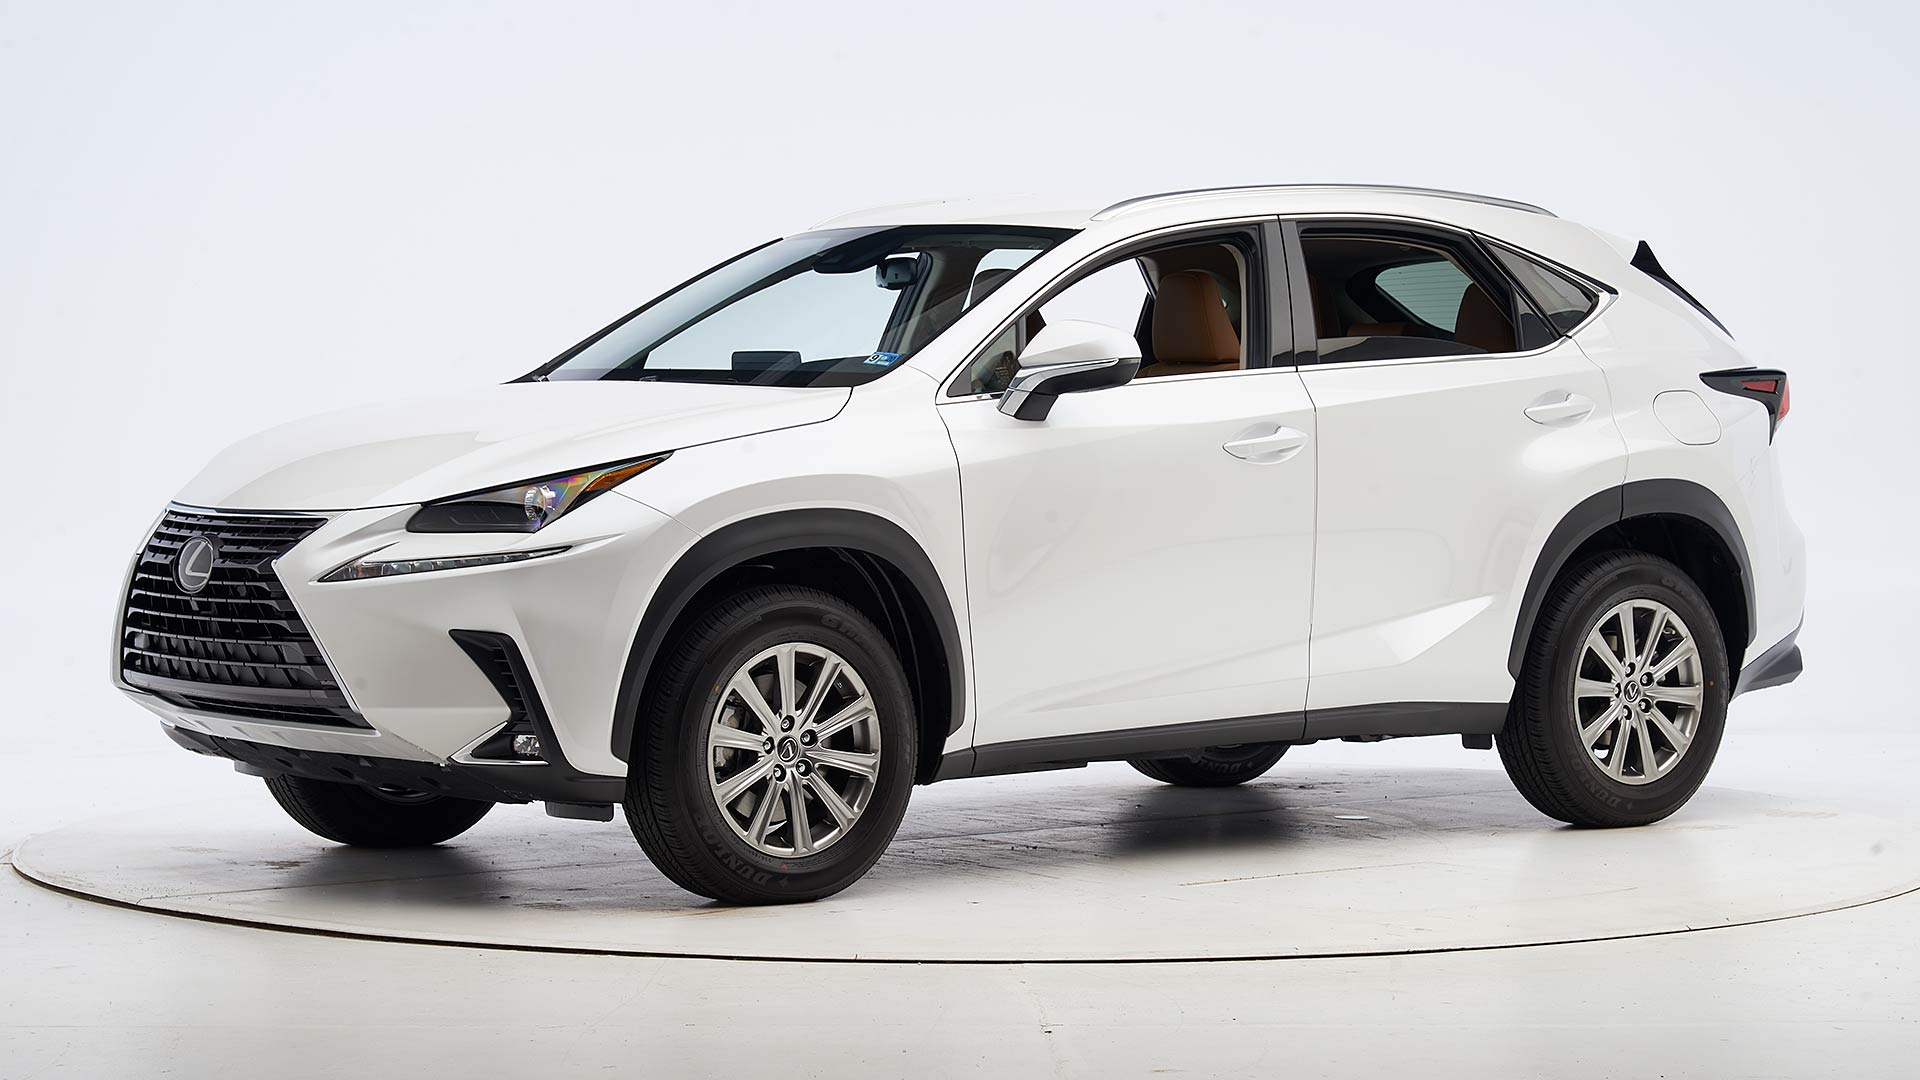 2020 Lexus NX 200t Price and Review